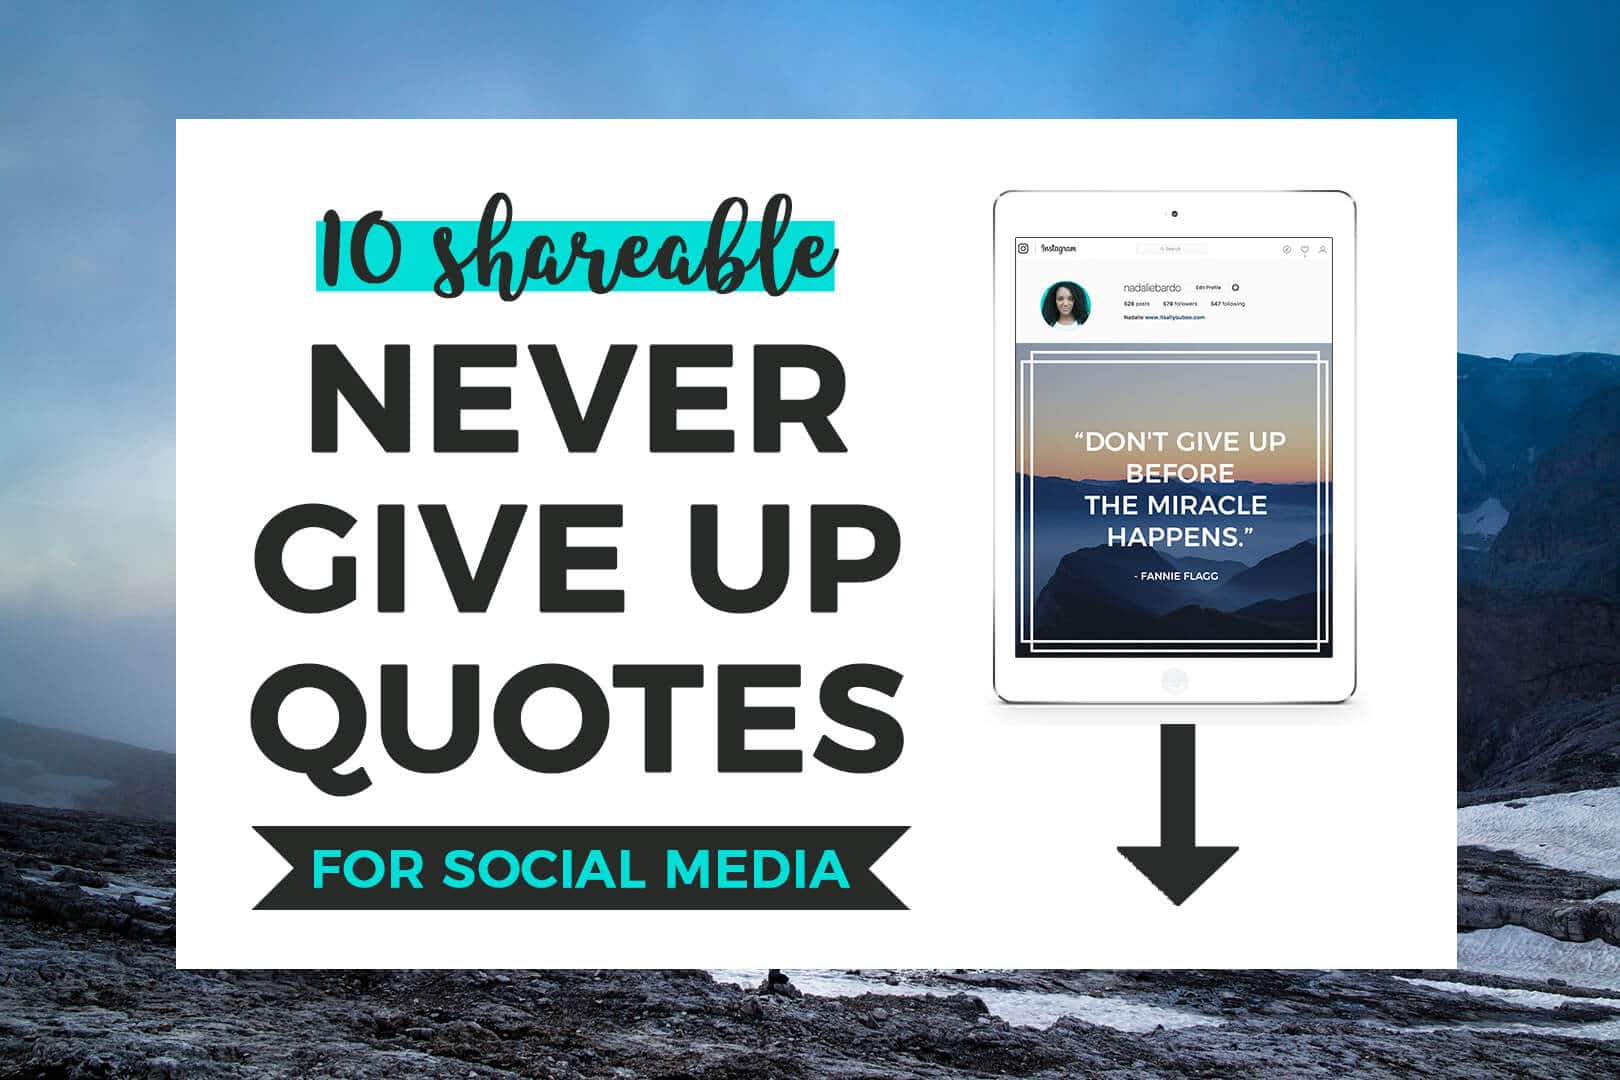 Quotes Never Give Up 10 Shareable Never Give Up Quotes  It's All You Boo